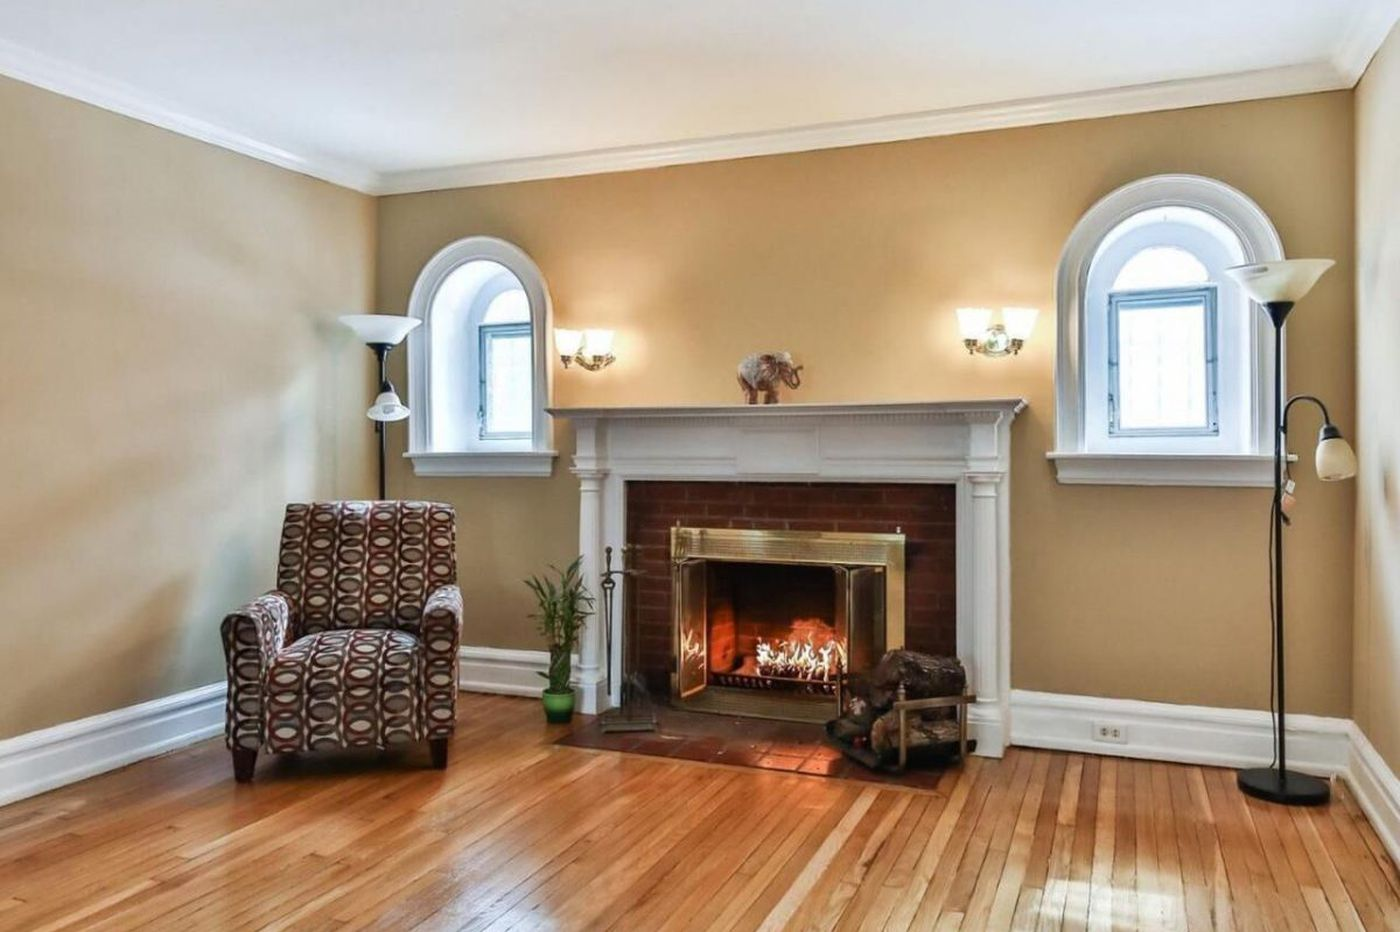 For sale in Philly: A family home with room for in-laws for $585,000